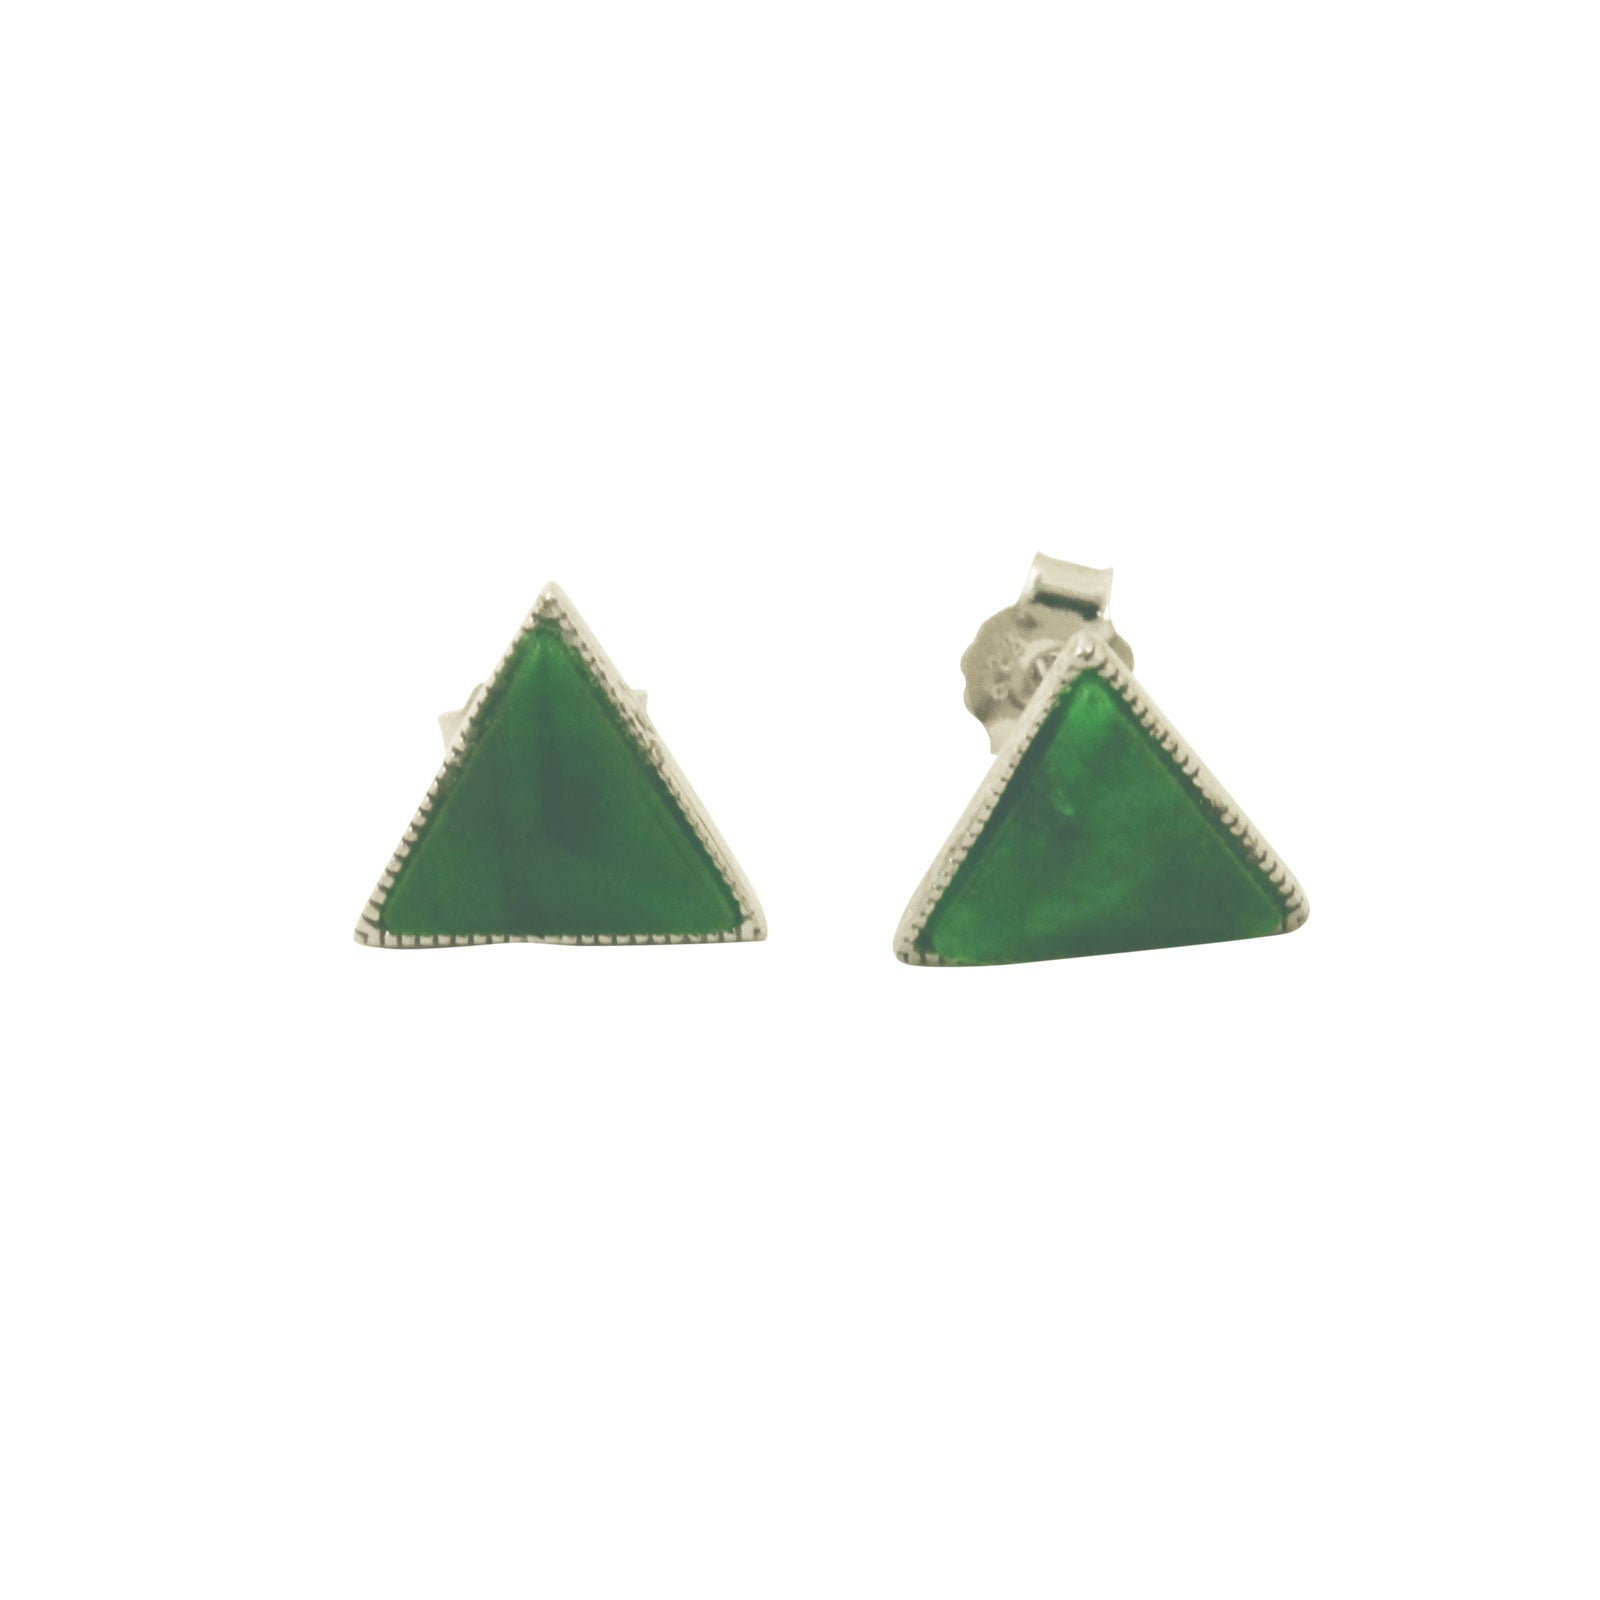 Green Stone Triangle Pyramid Stud Earrings